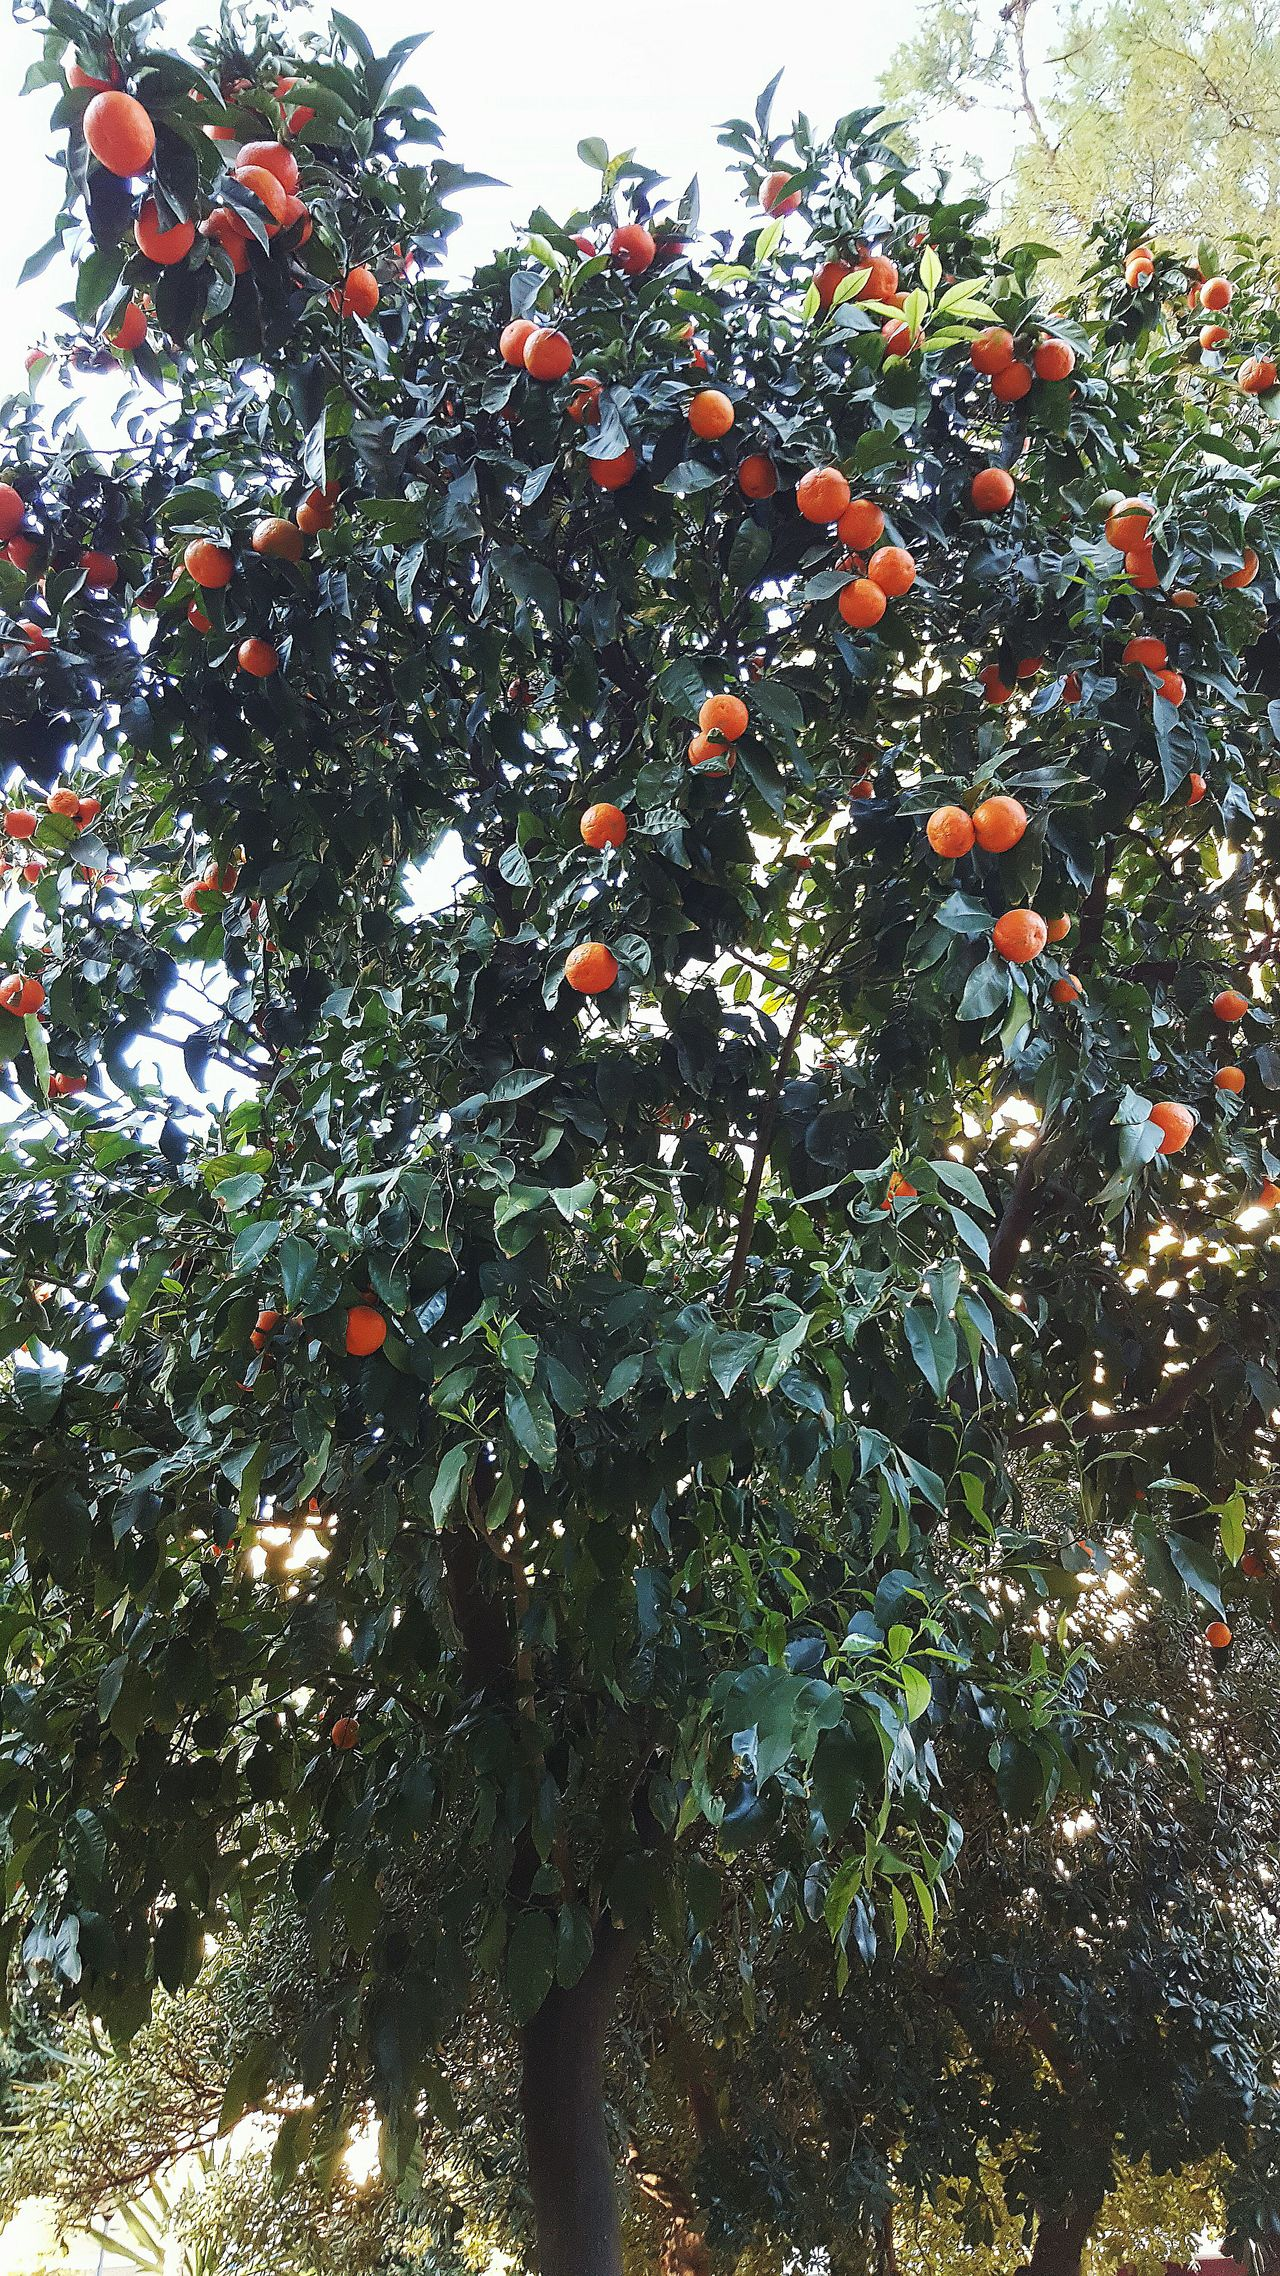 Tree Fruit Tree Fruit Orange Nature Growth Branch Full Frame Freshness Day Clear Sky Sky Nature No People Colour Of Life EyeEm Premium Collection Sevilla Spain